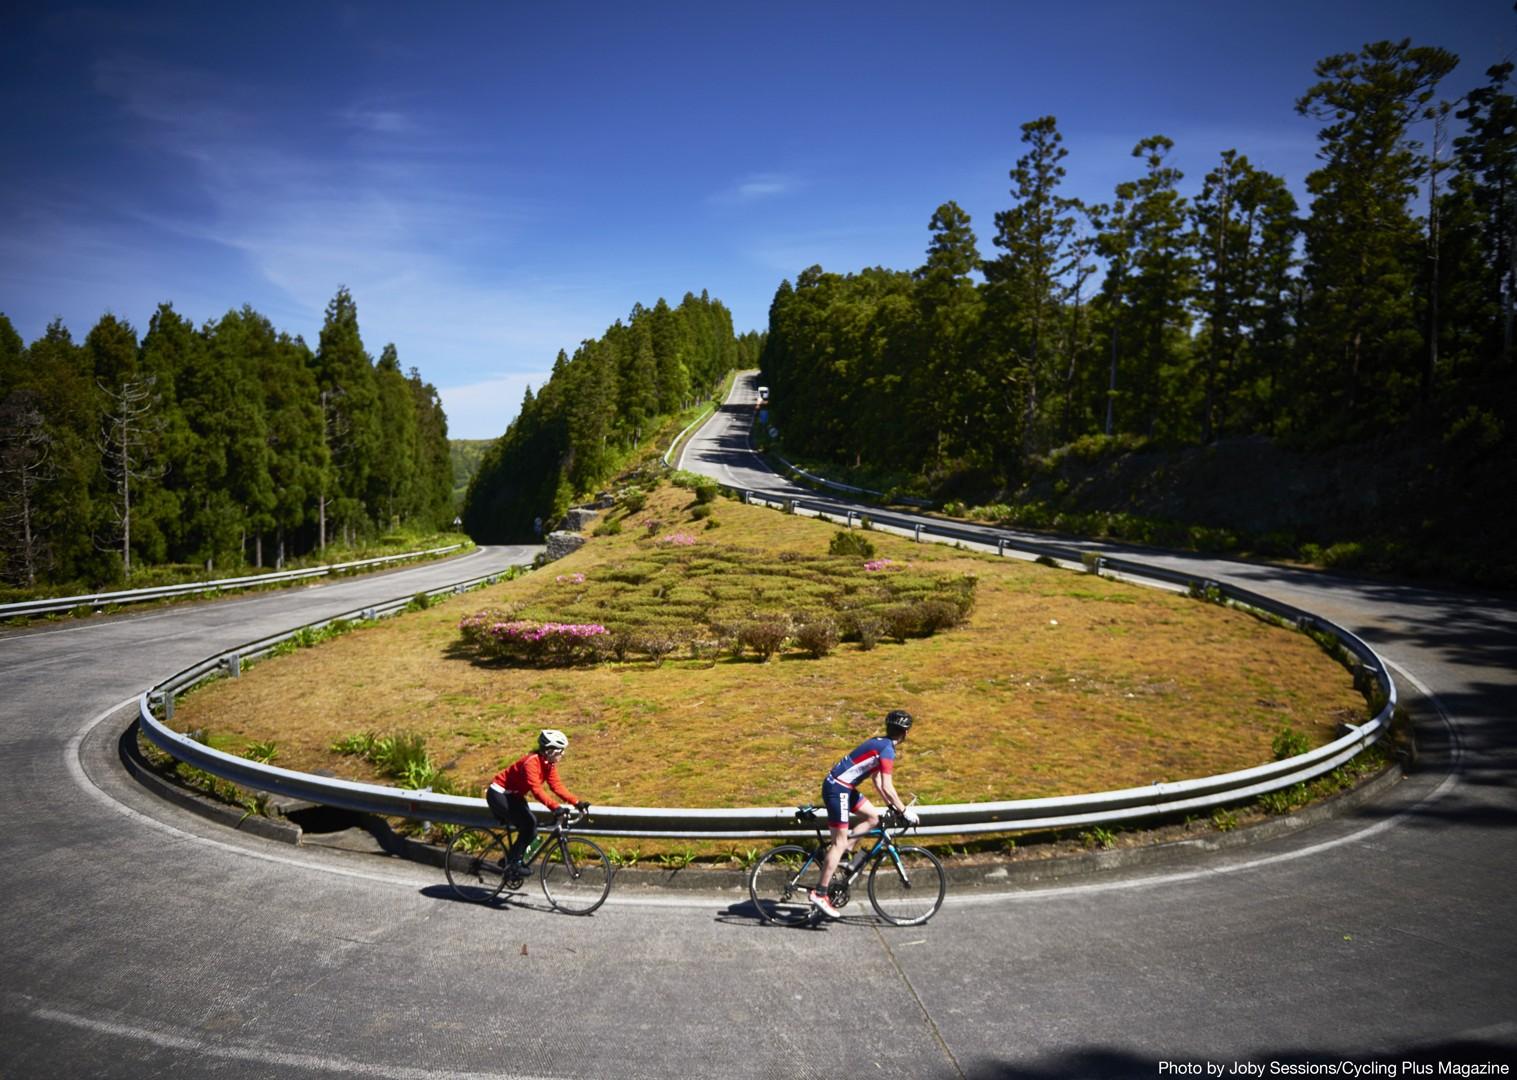 atlantic-ocean-guided-road-cycling-holiday-the-azores-lost-world-of-sao-miguel.JPG - The Azores - Lost World of Sao Miguel - Guided Road Cycling Holiday - Road Cycling